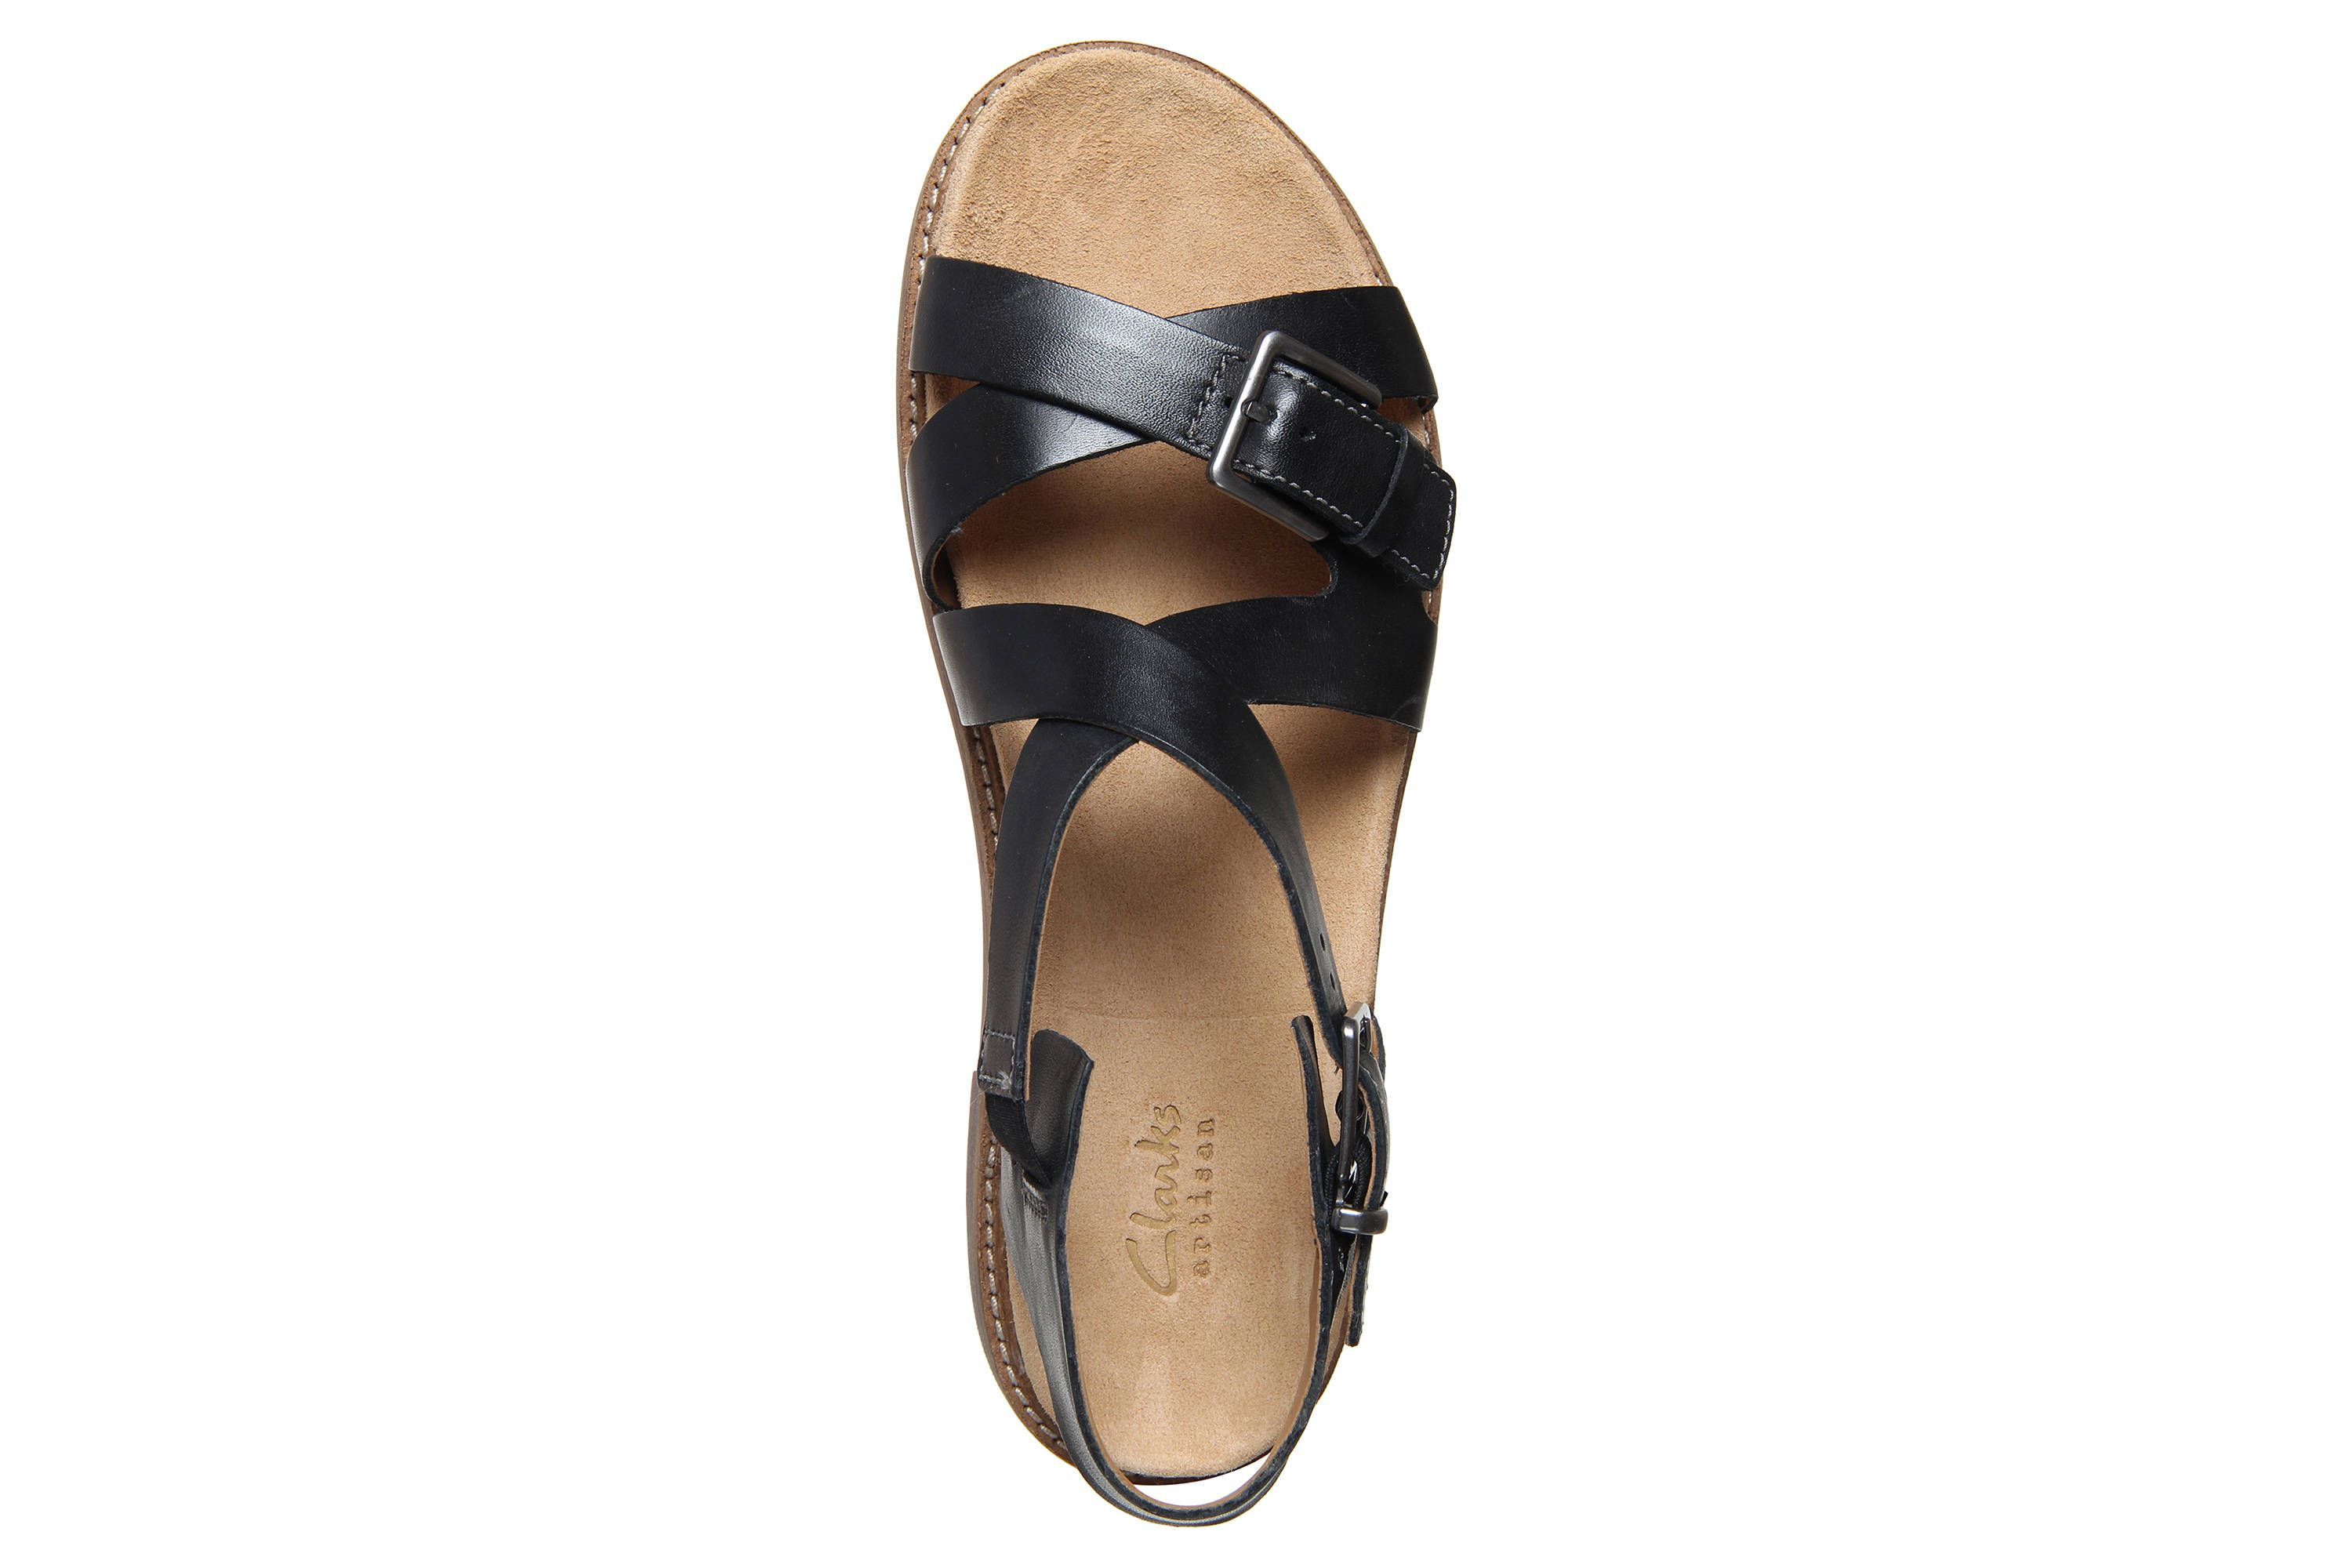 89ff7ff510 Buy Clarks Corsio Bambi Flat Sandals For Women Online | Clarks Shoes ...